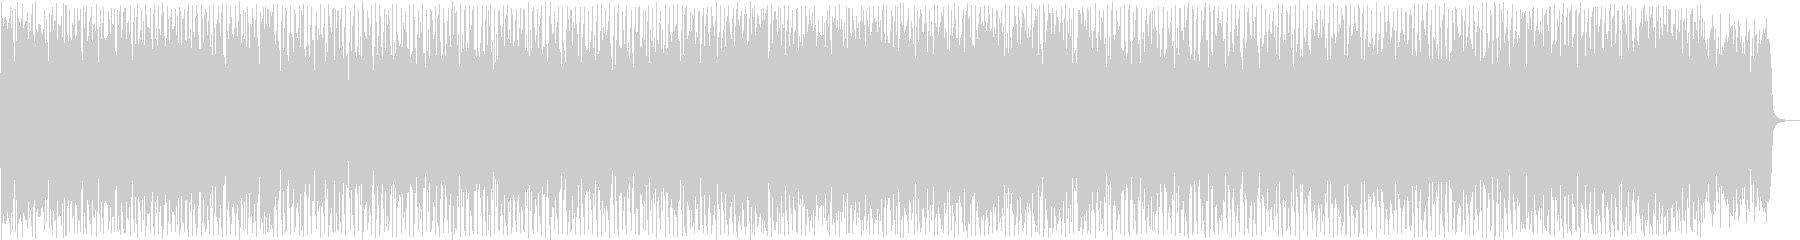 Cool techno song's unreproduced waveform